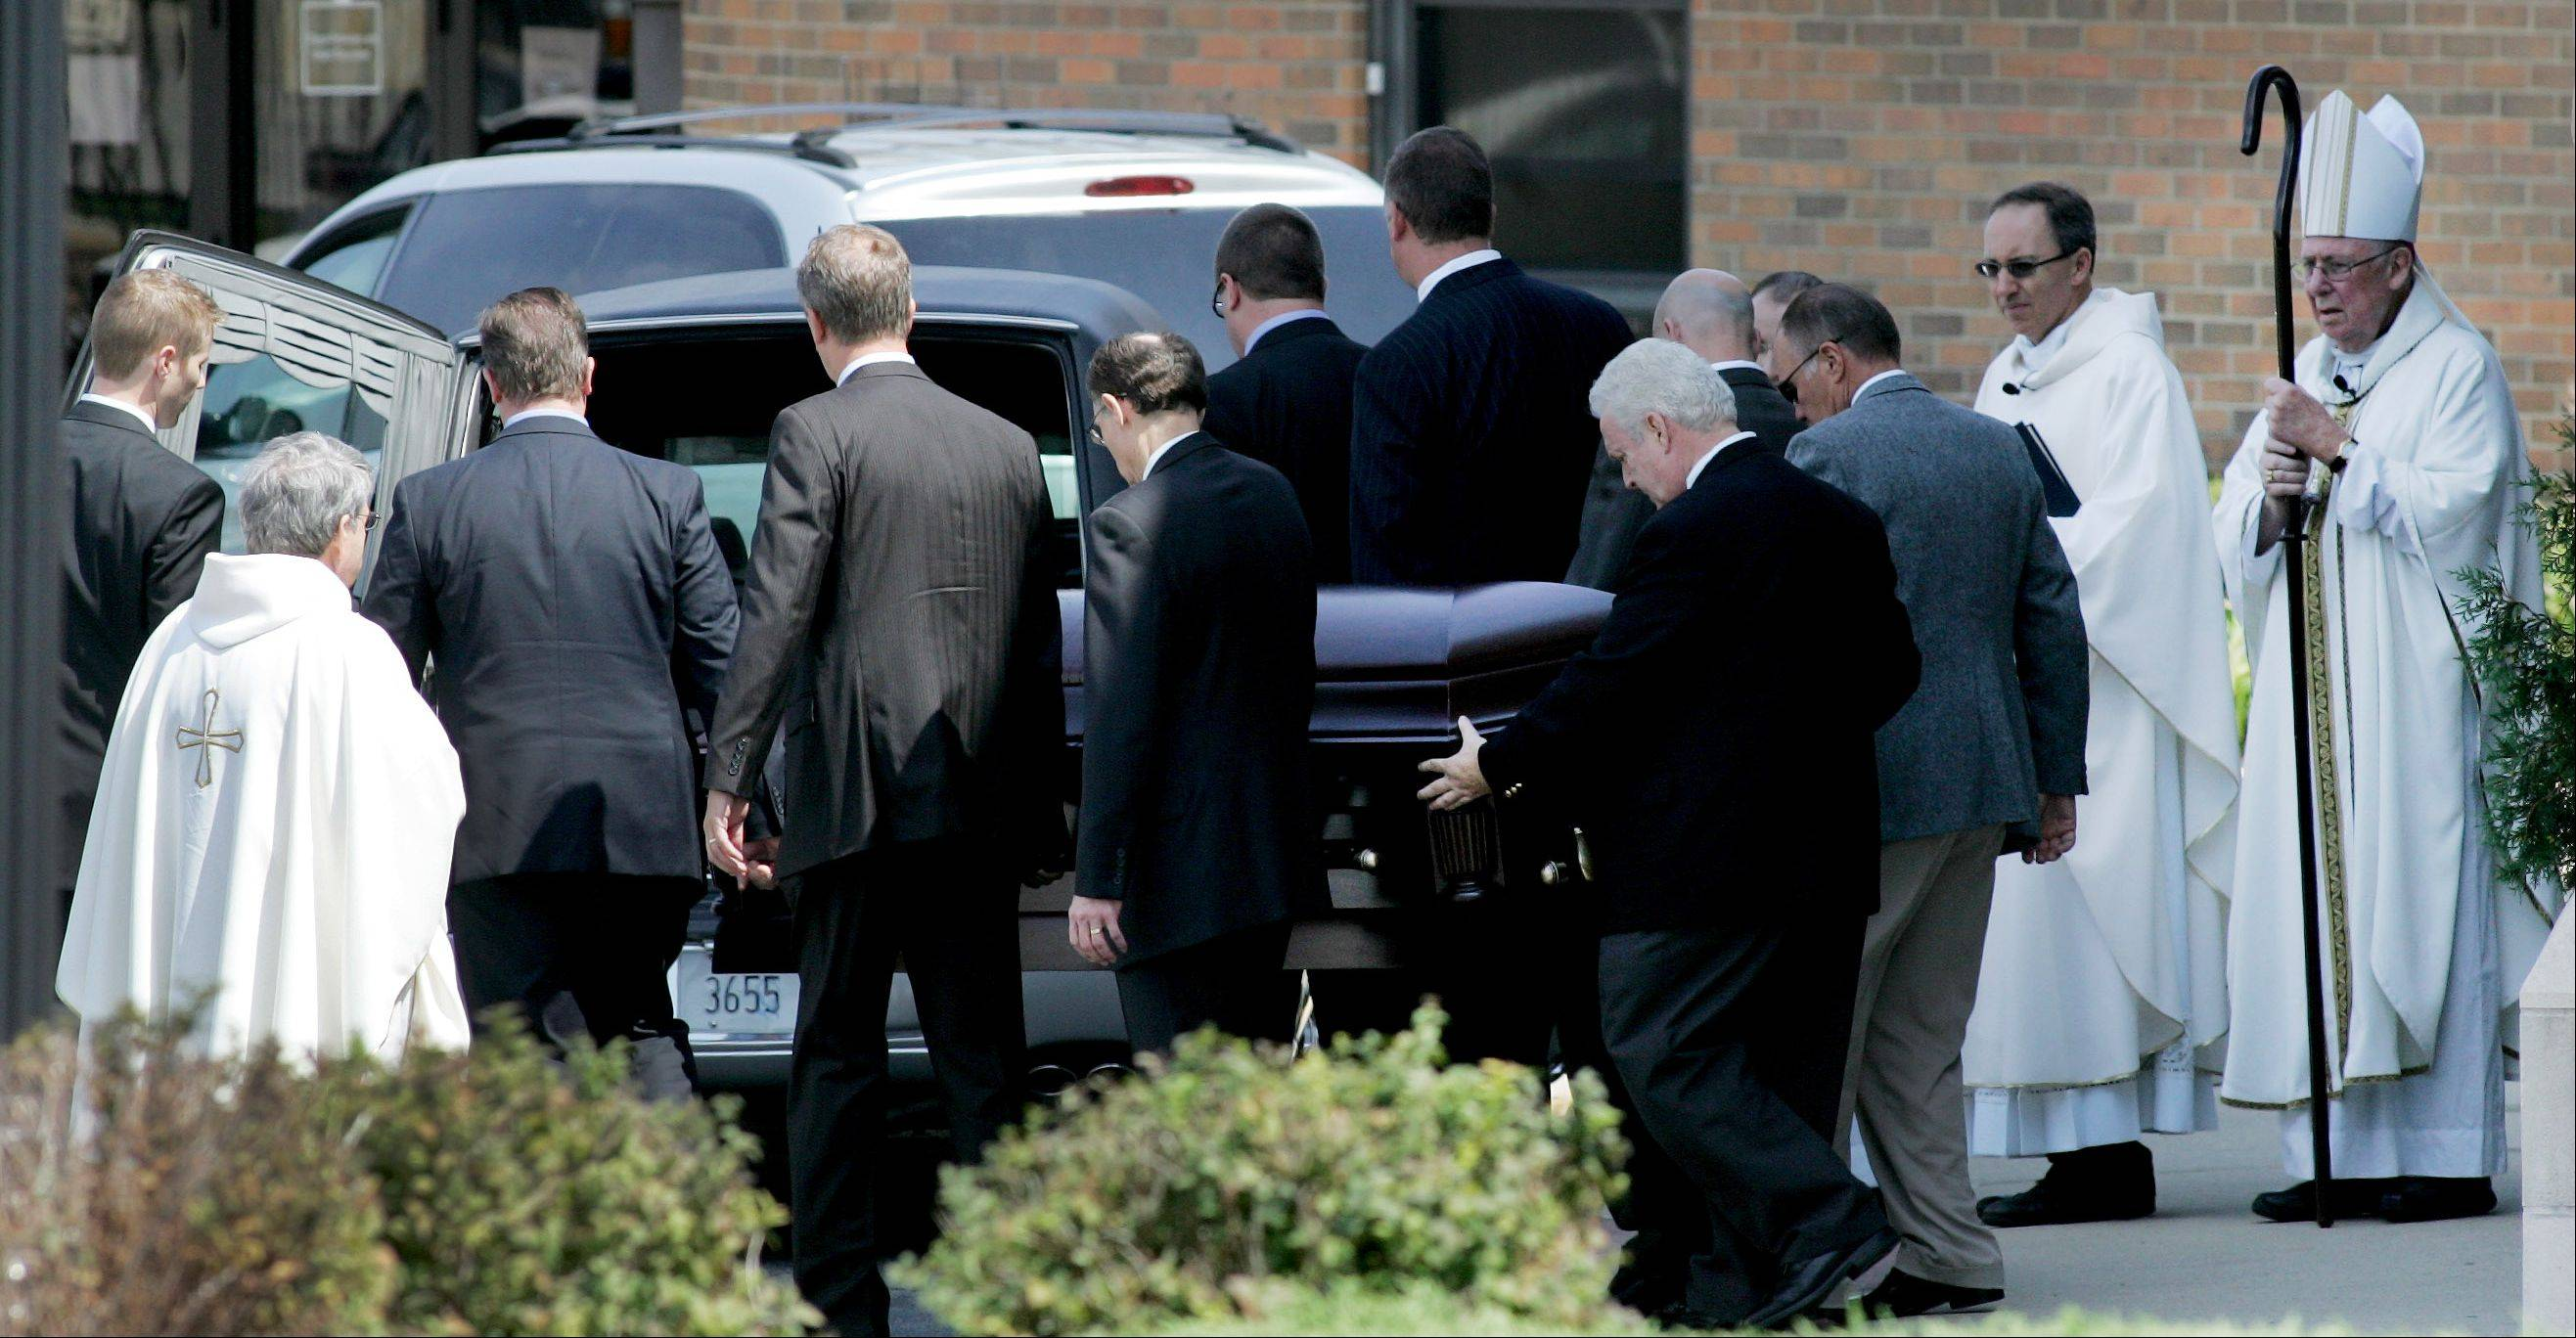 The casket of Megan Boken is placed in a hearse after her funeral at St. Michael Church in Wheaton on Thursday.